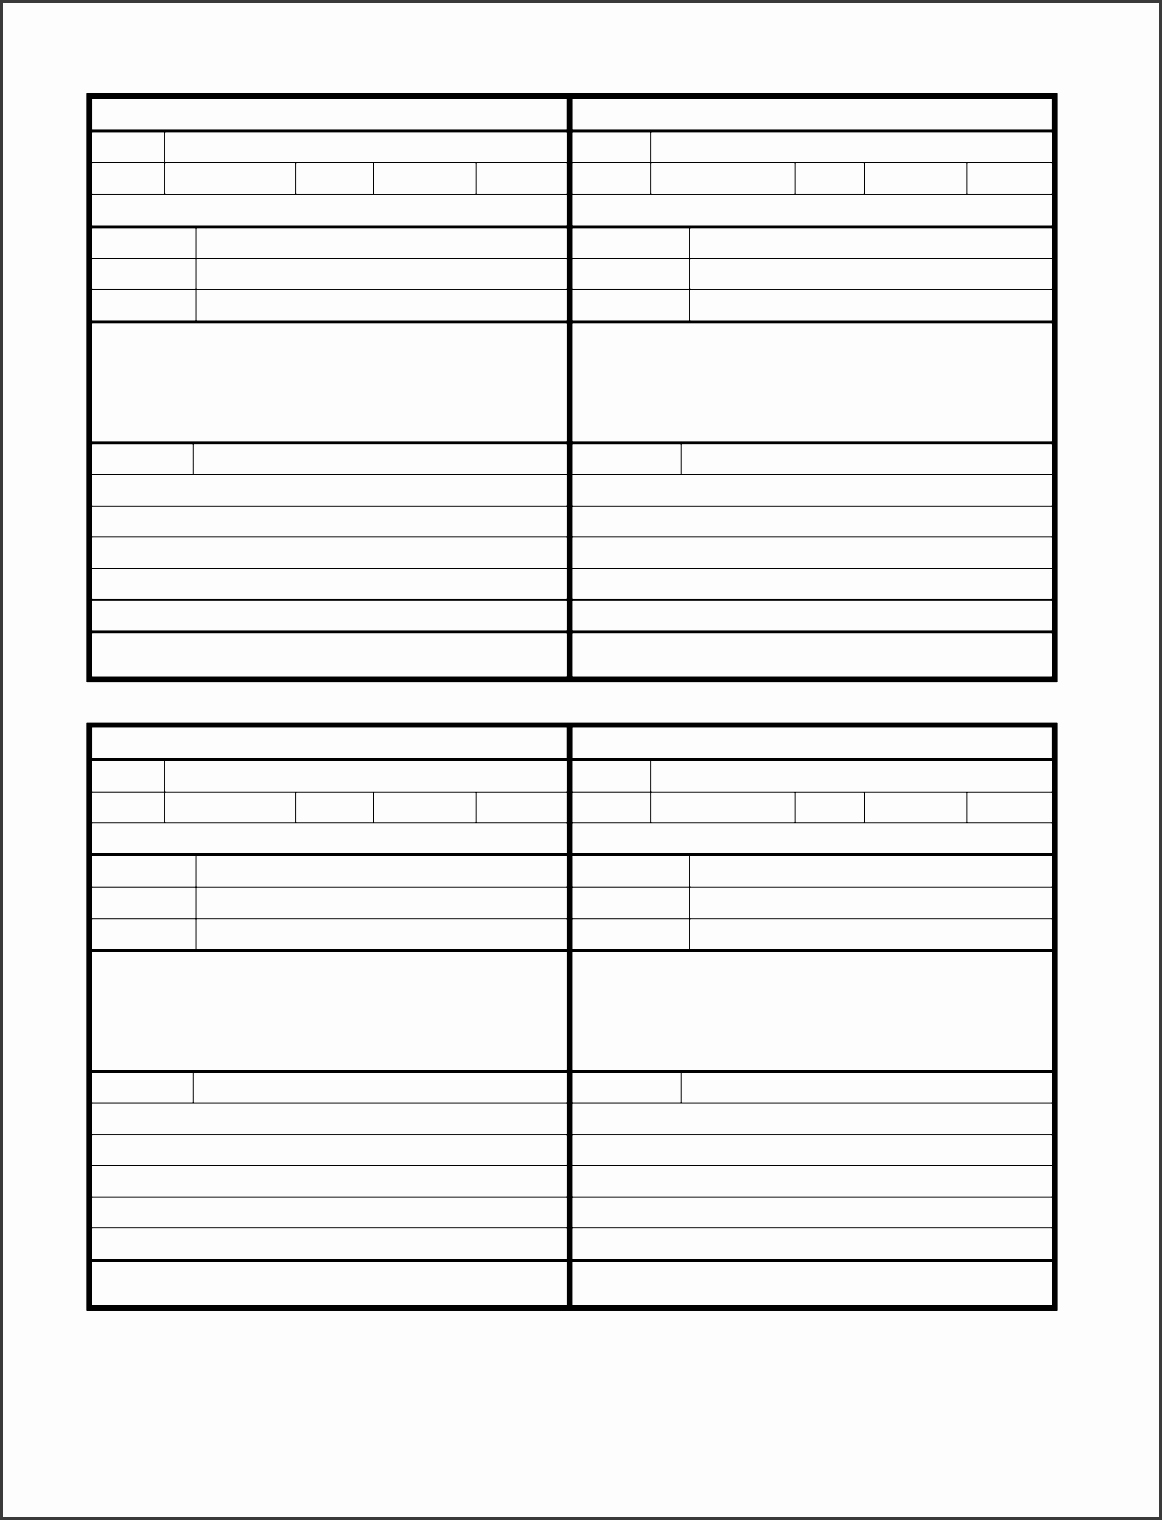 Enchanting symptom diary template ornament example for Seizure diary template